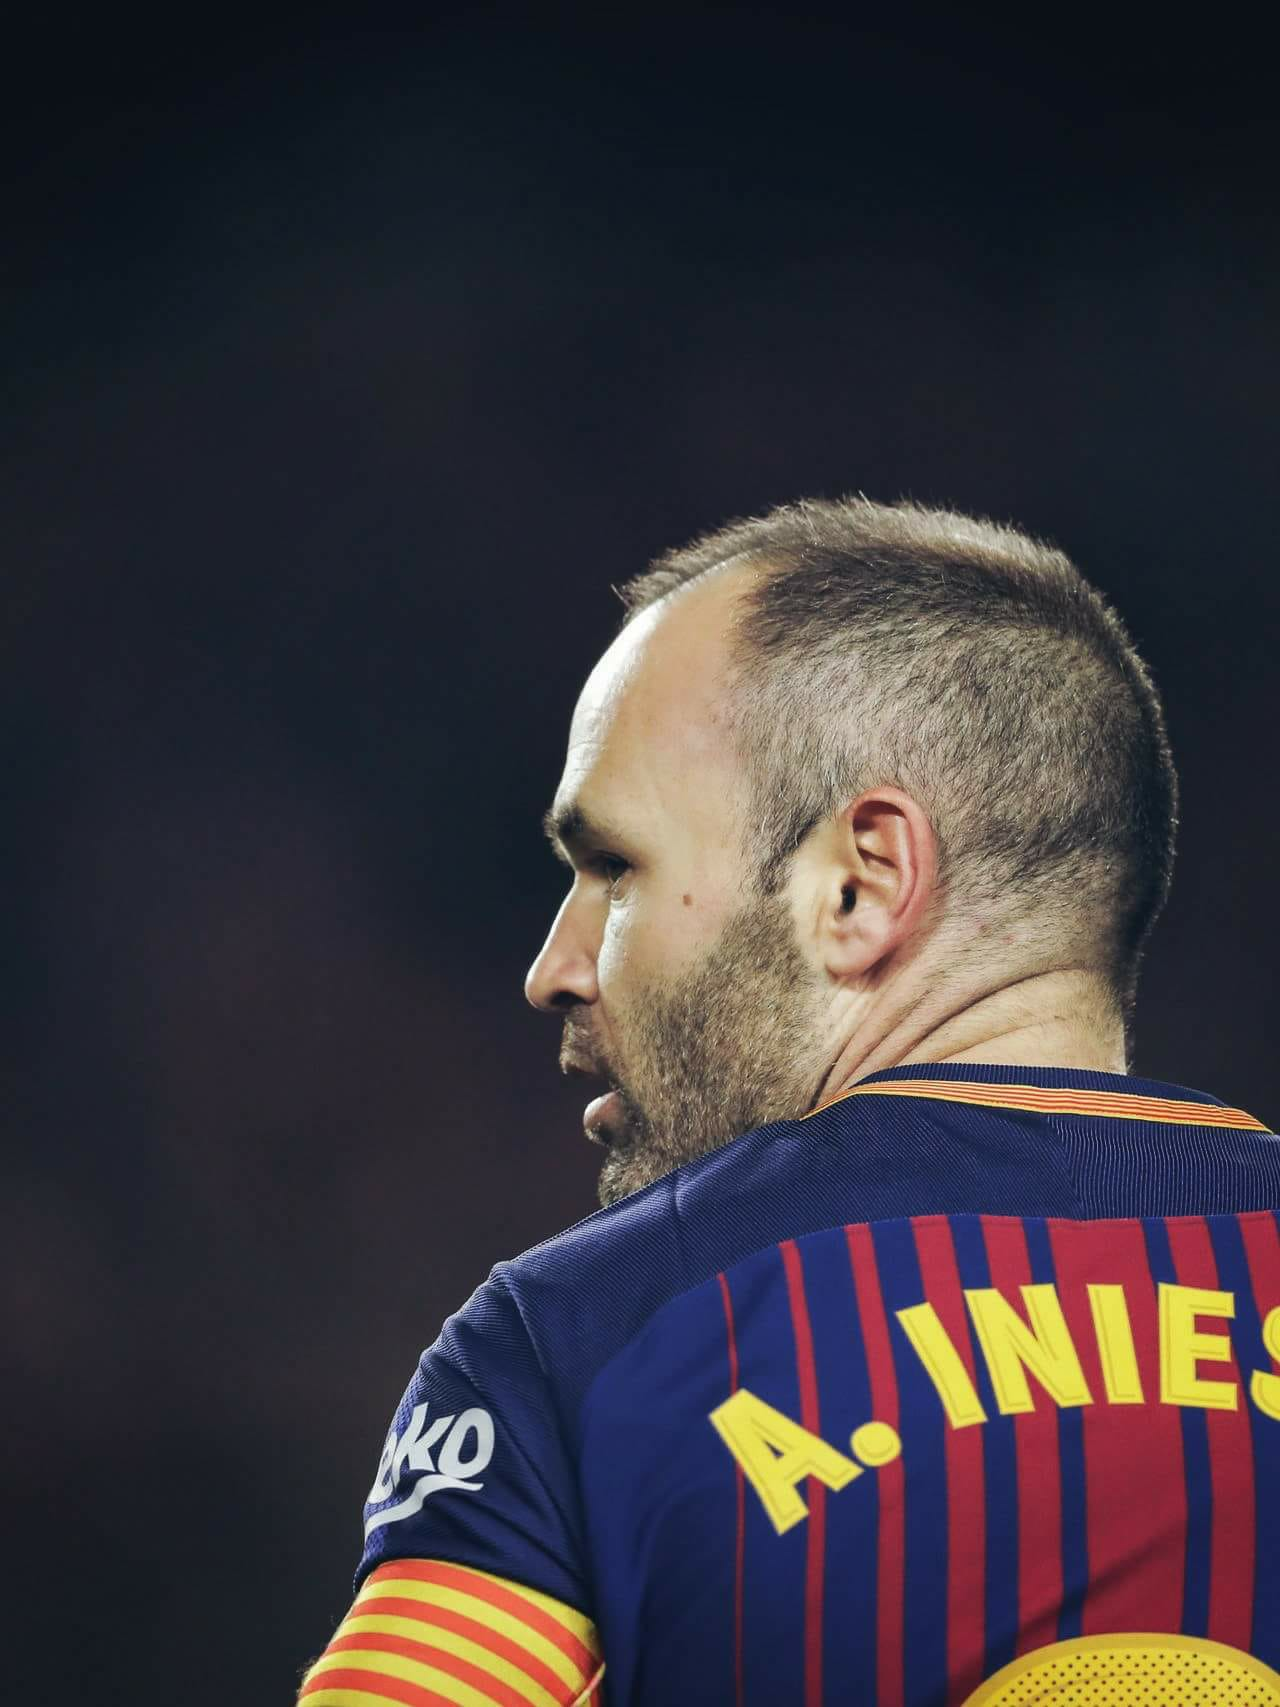 Andres Iniesta 34th birthday timeline